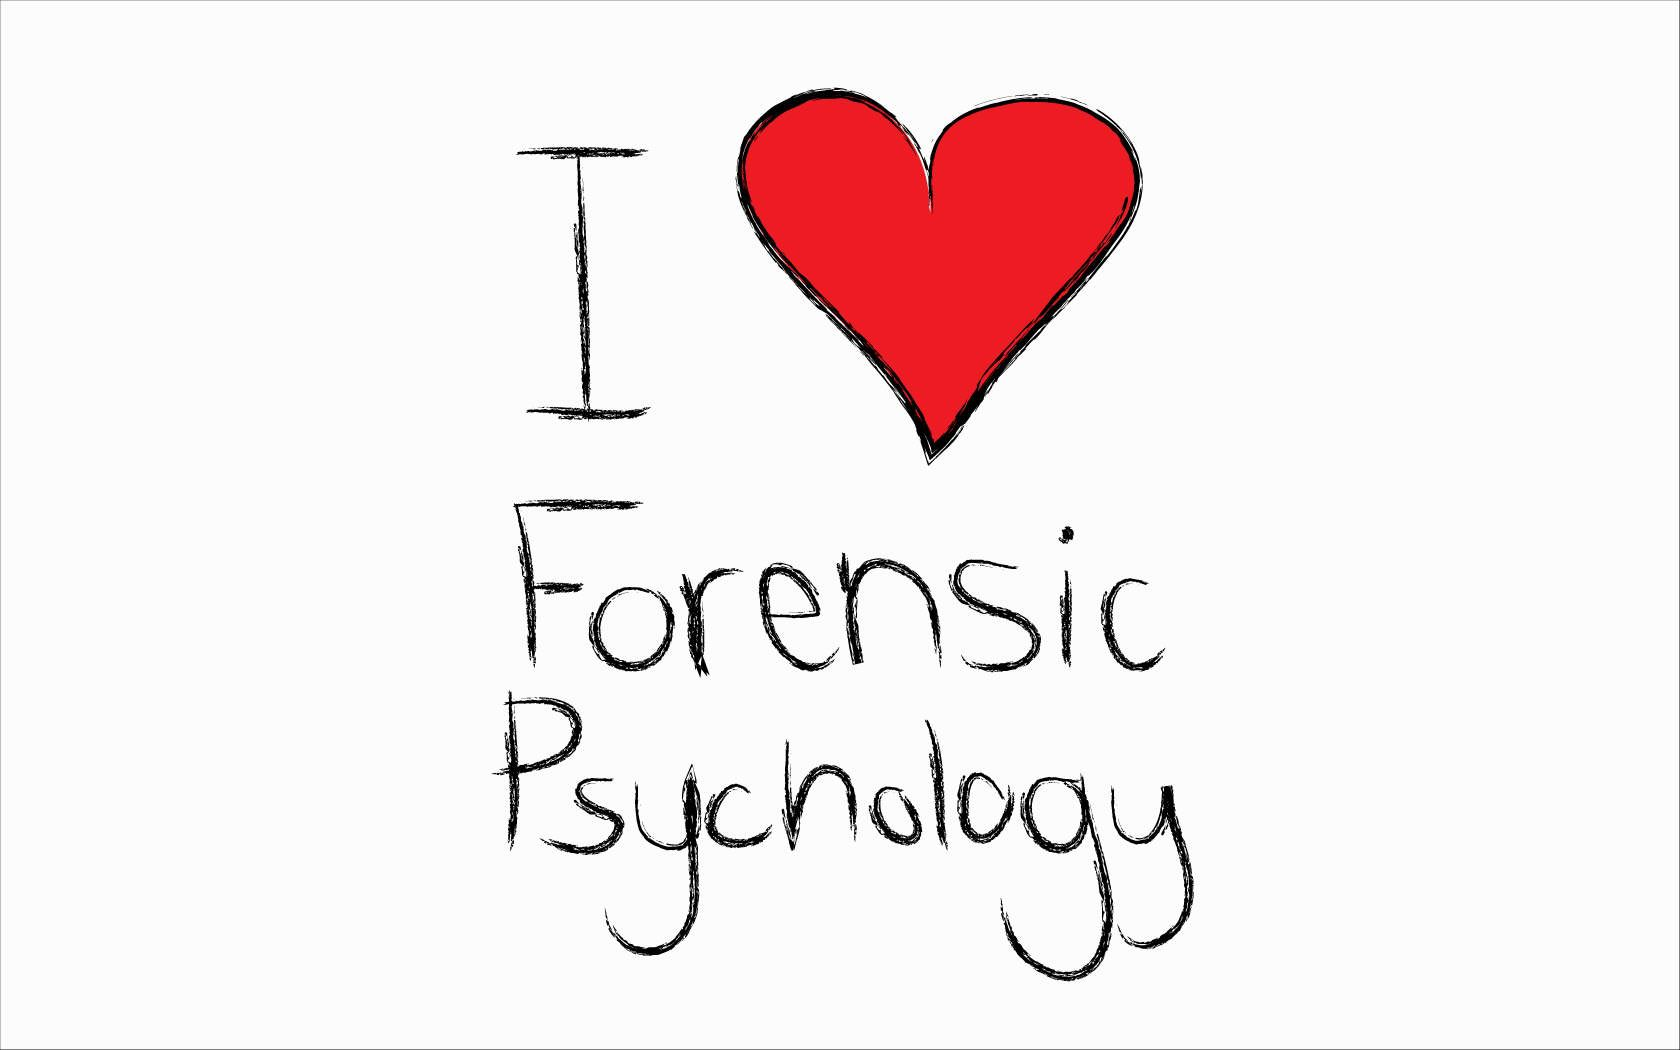 Careers In Forensic Psychology Are Often Highly Competitive So It S Important To Choose The Right Kind Of Forensic P Forensic Psychology Forensics Psychology